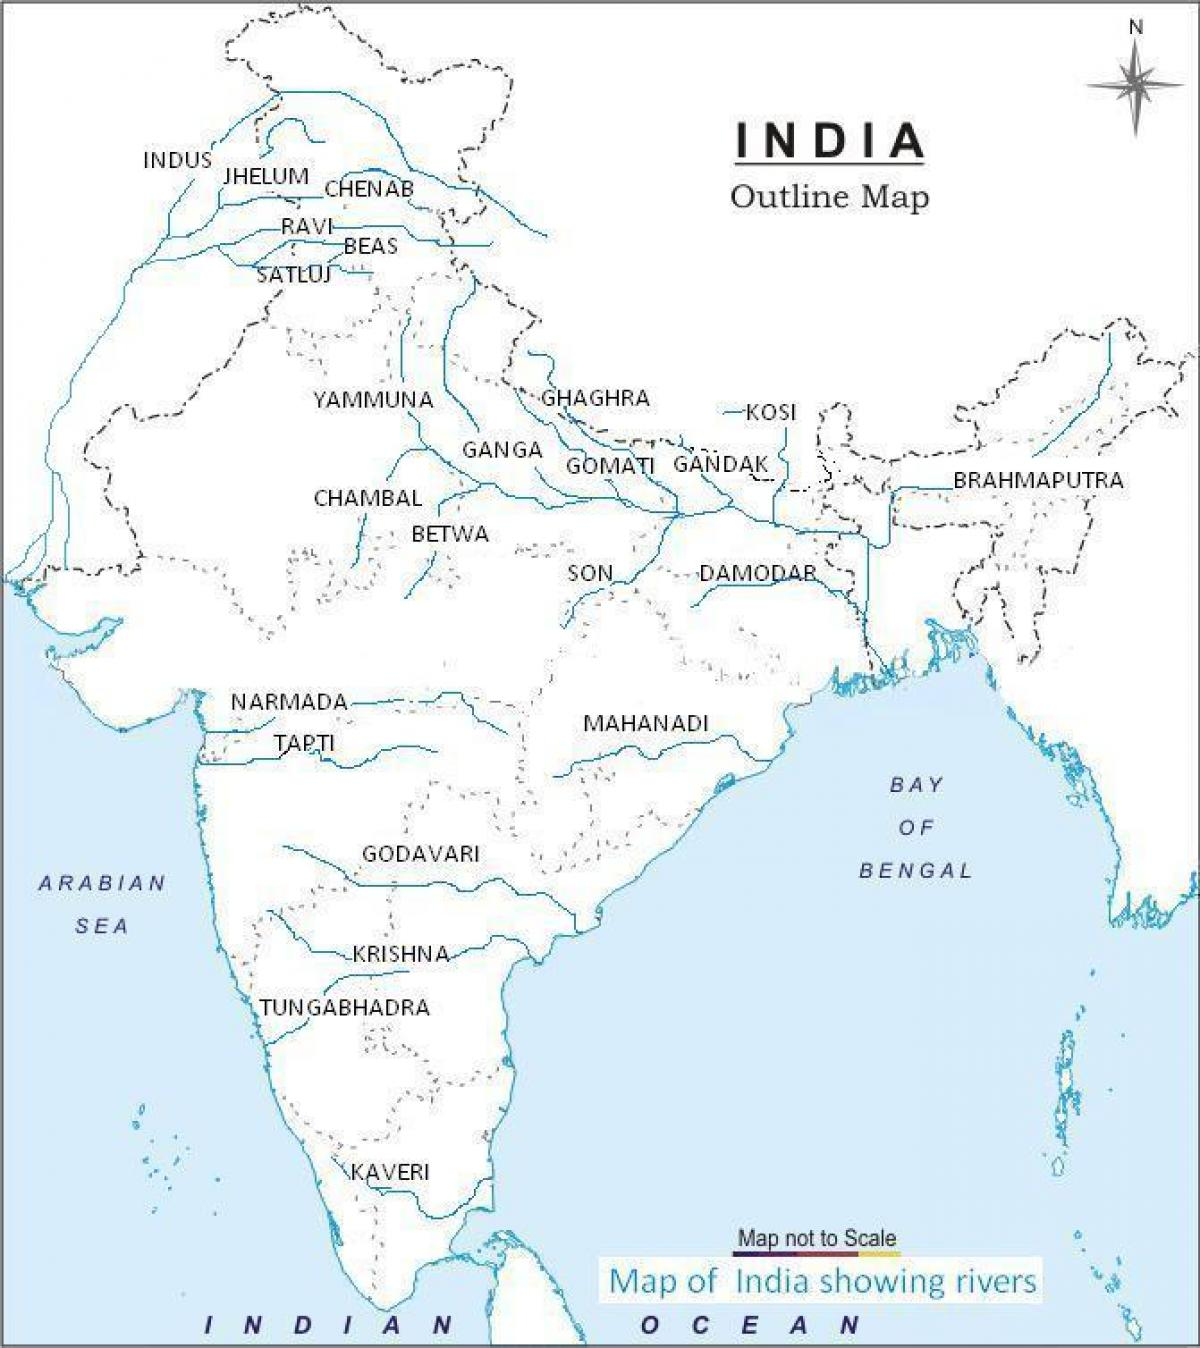 River outline map of India - India outline river map (Southern Asia ...